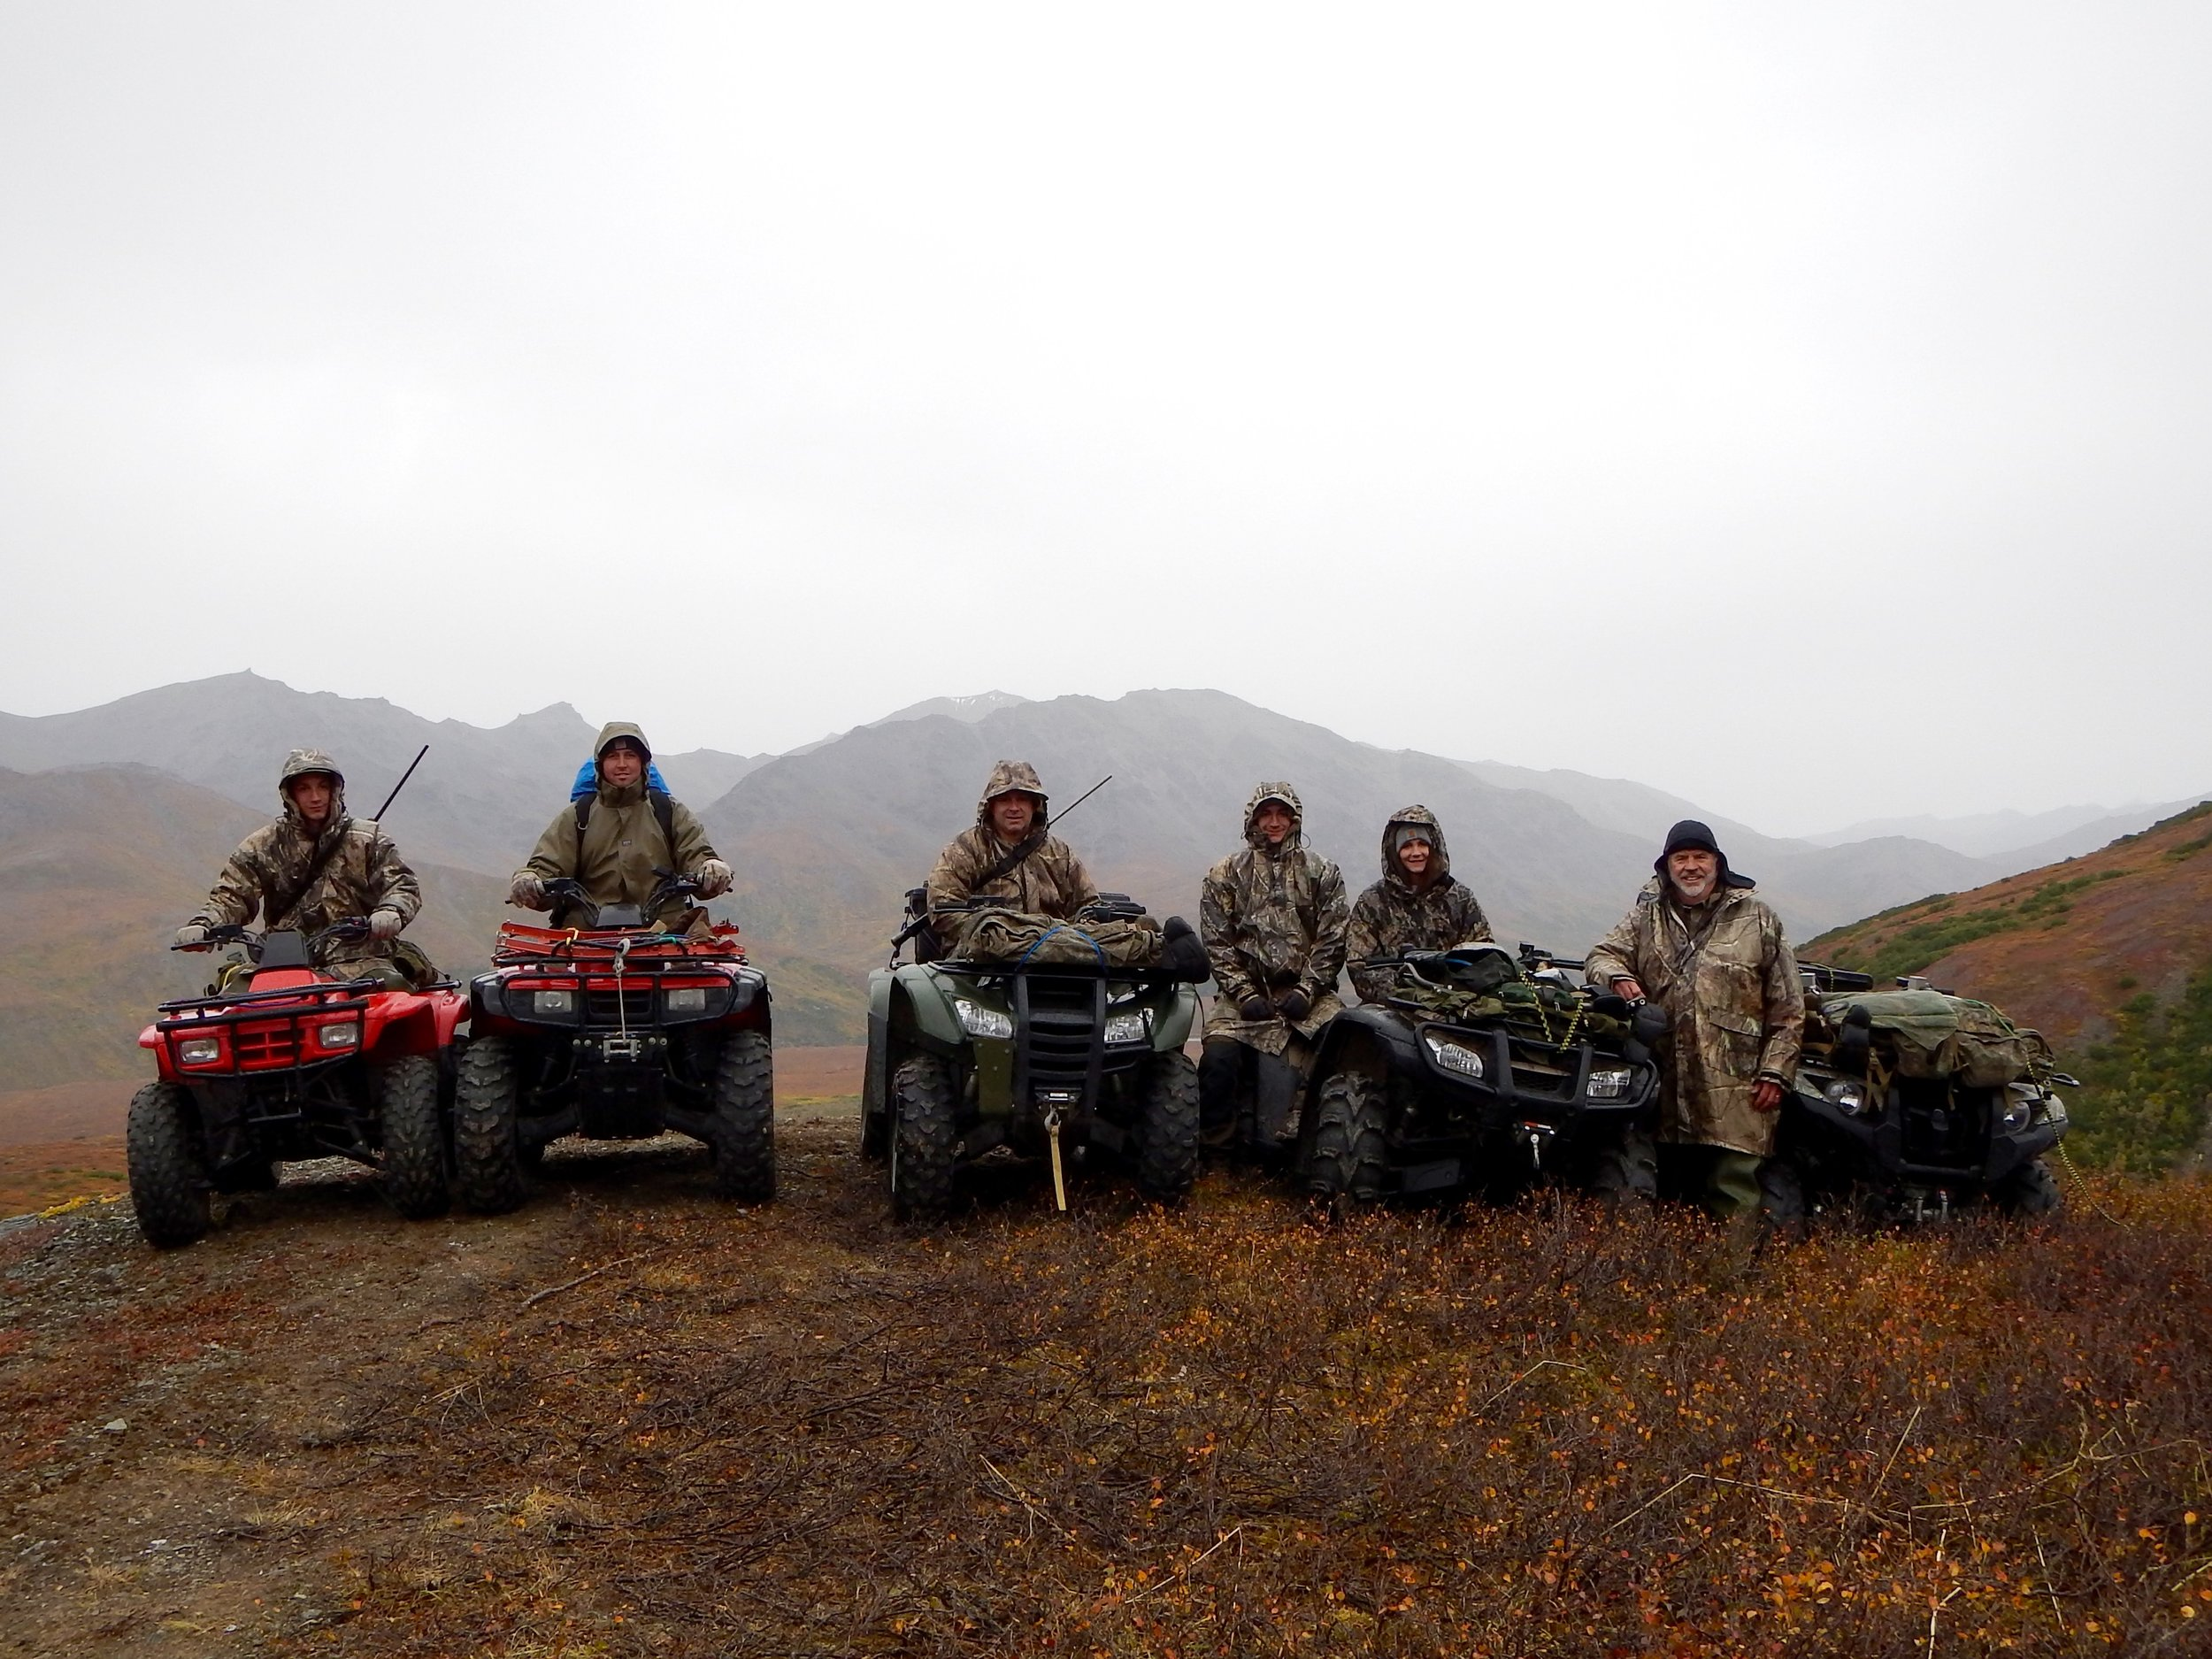 With rain showers in the background we are headed off the mountain. (L to R) Jared, Nate, Sagen, Nathan, Rachel and yours truly.